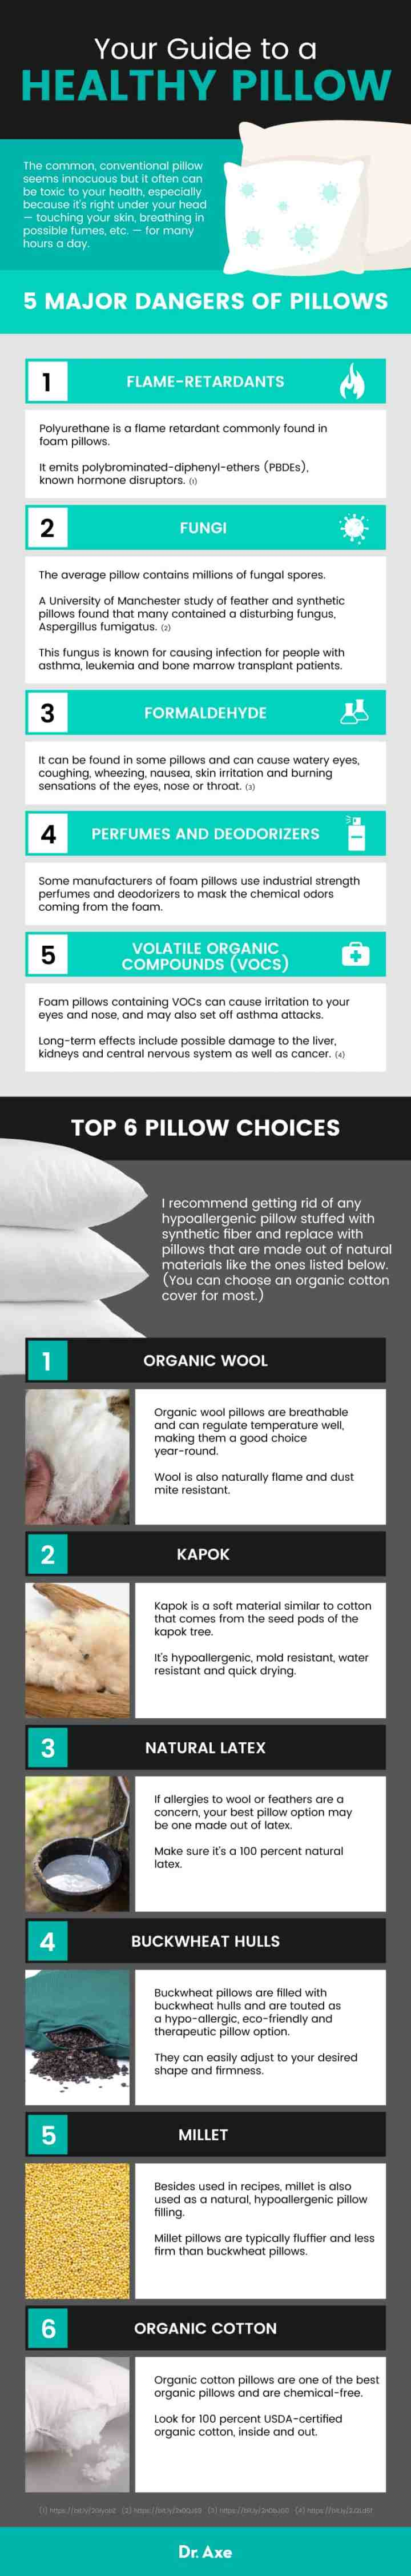 Guide to best pillows - Dr. Axe